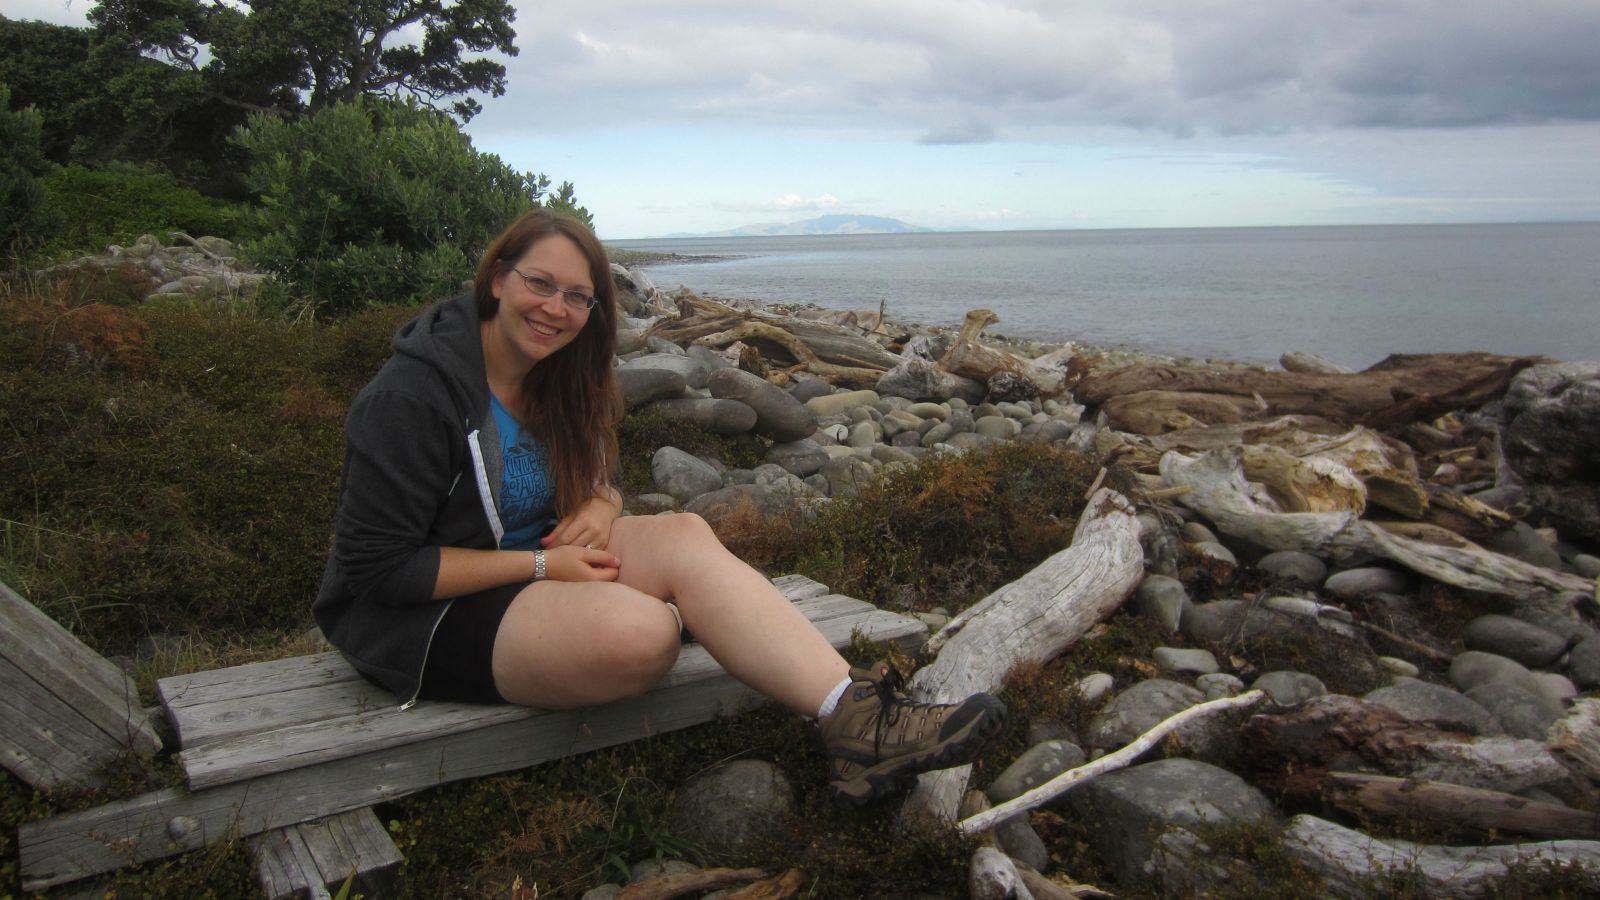 Katie sits on a bench on a rocky beach with the ocean and trees in the background